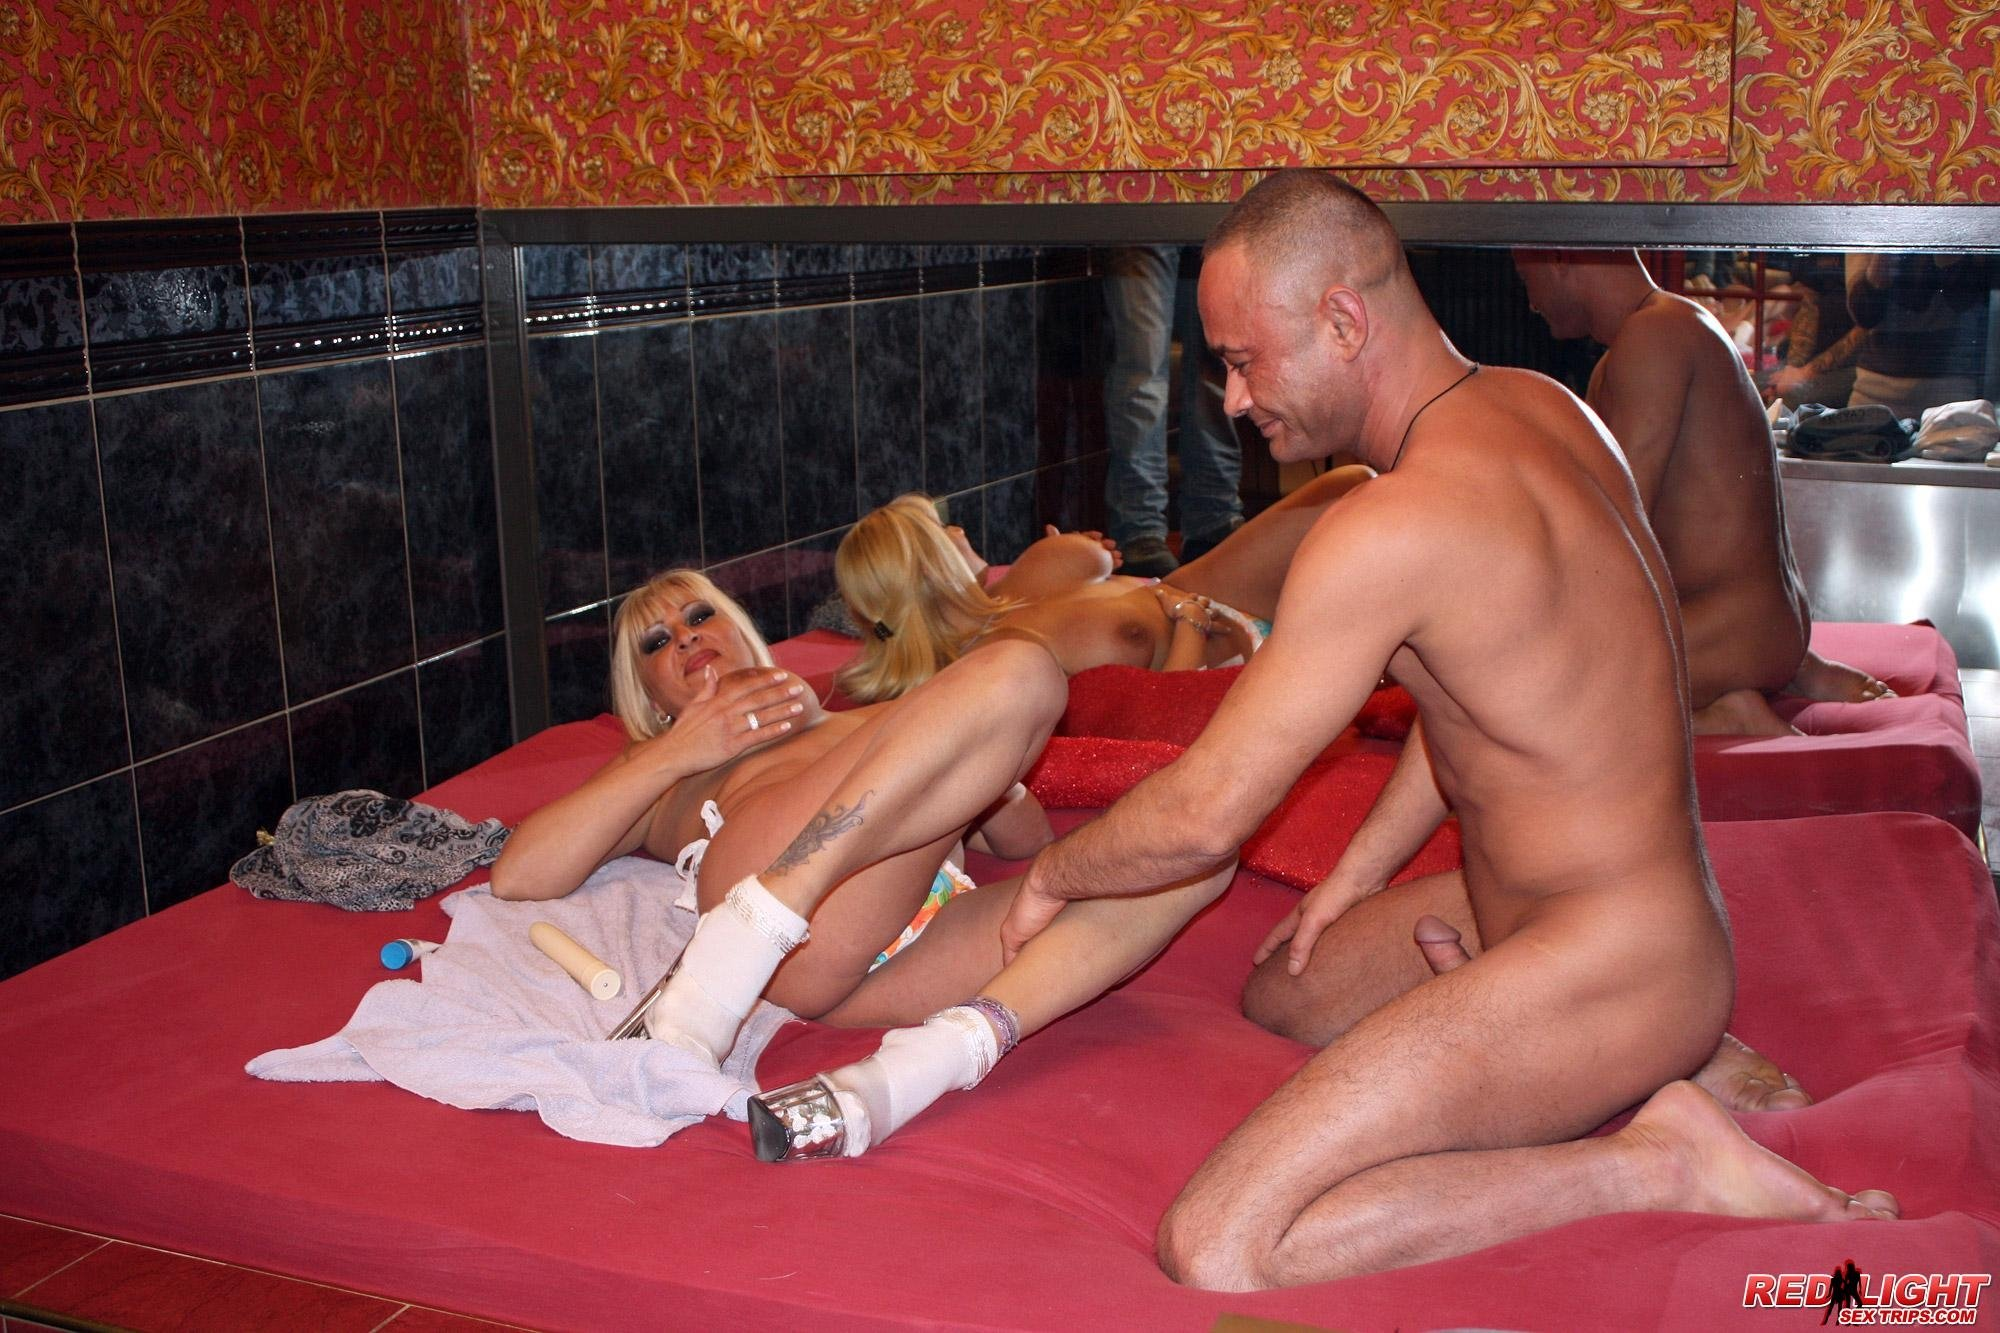 girl-having-amsterdam-sex-with-virgins